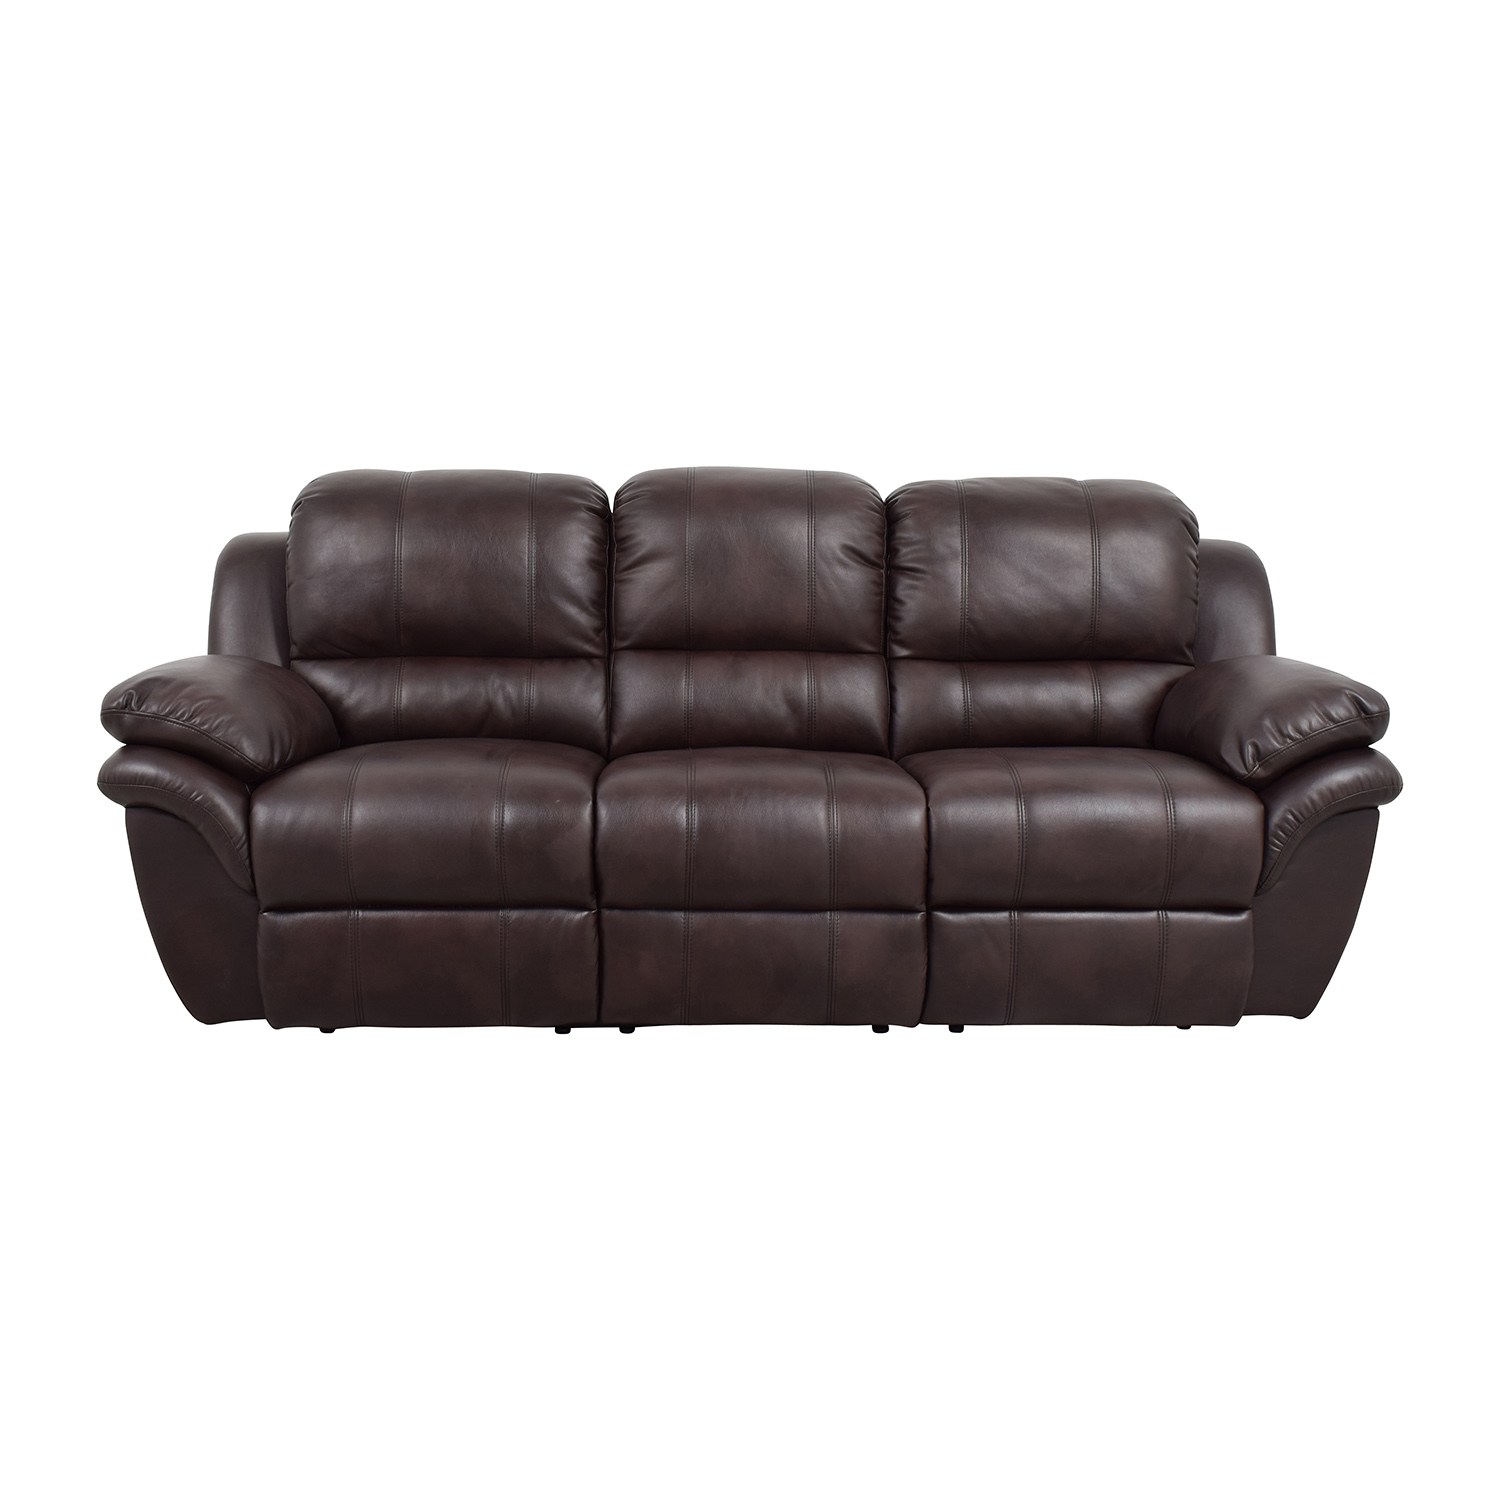 Shop New Classic Home Furnishing New Classic Home Furnishing Leather  Reclining Brown Couch Online ...